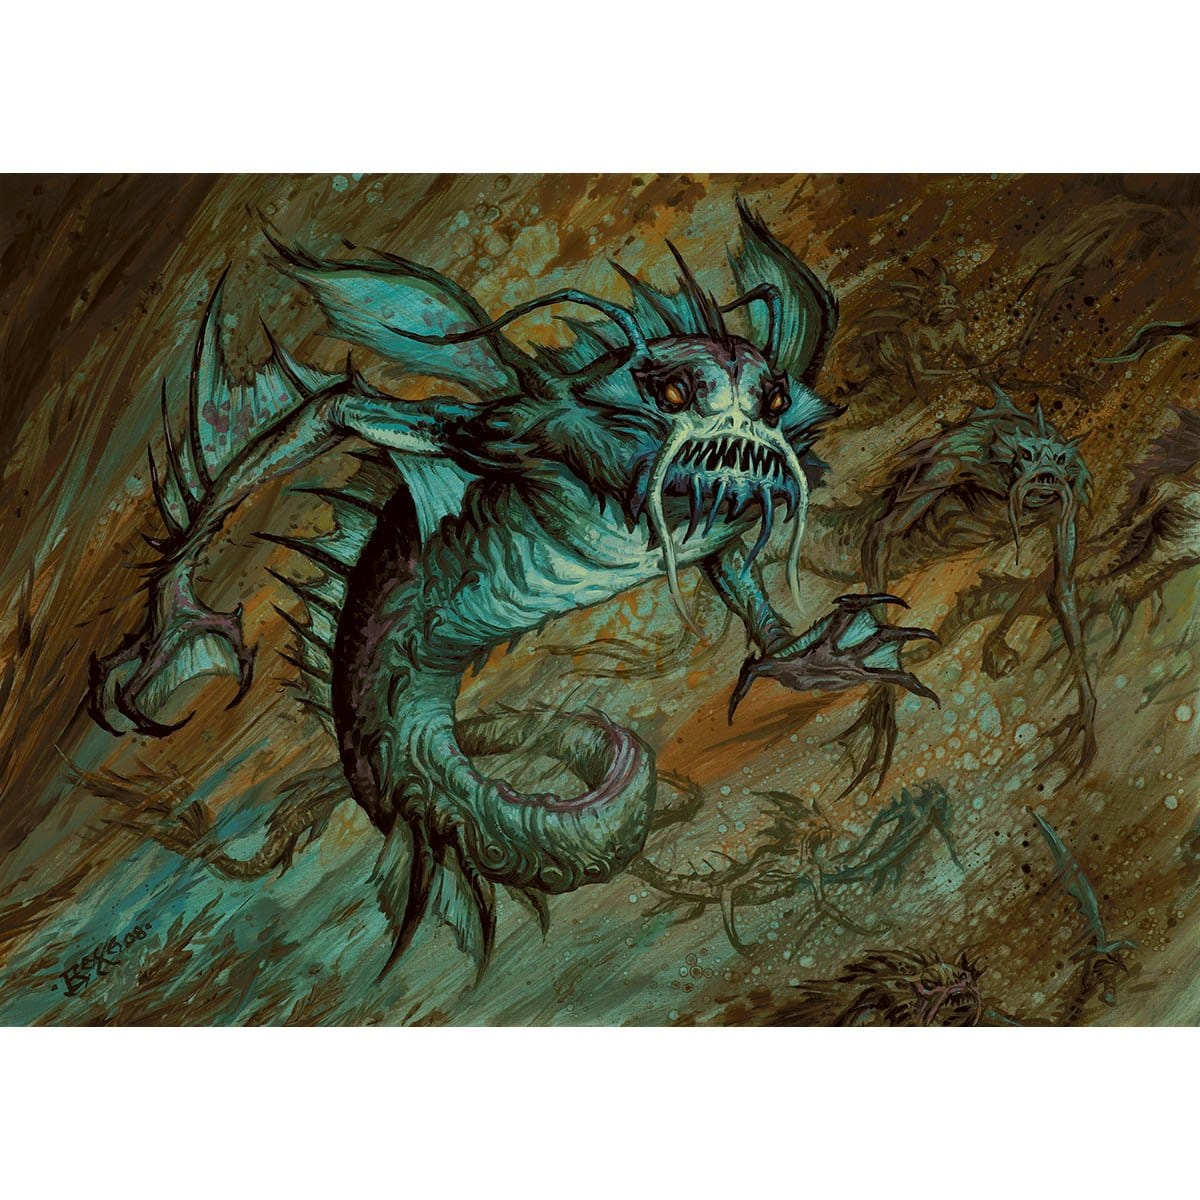 Merfolk Reejery Print - Print - Original Magic Art - Accessories for Magic the Gathering and other card games